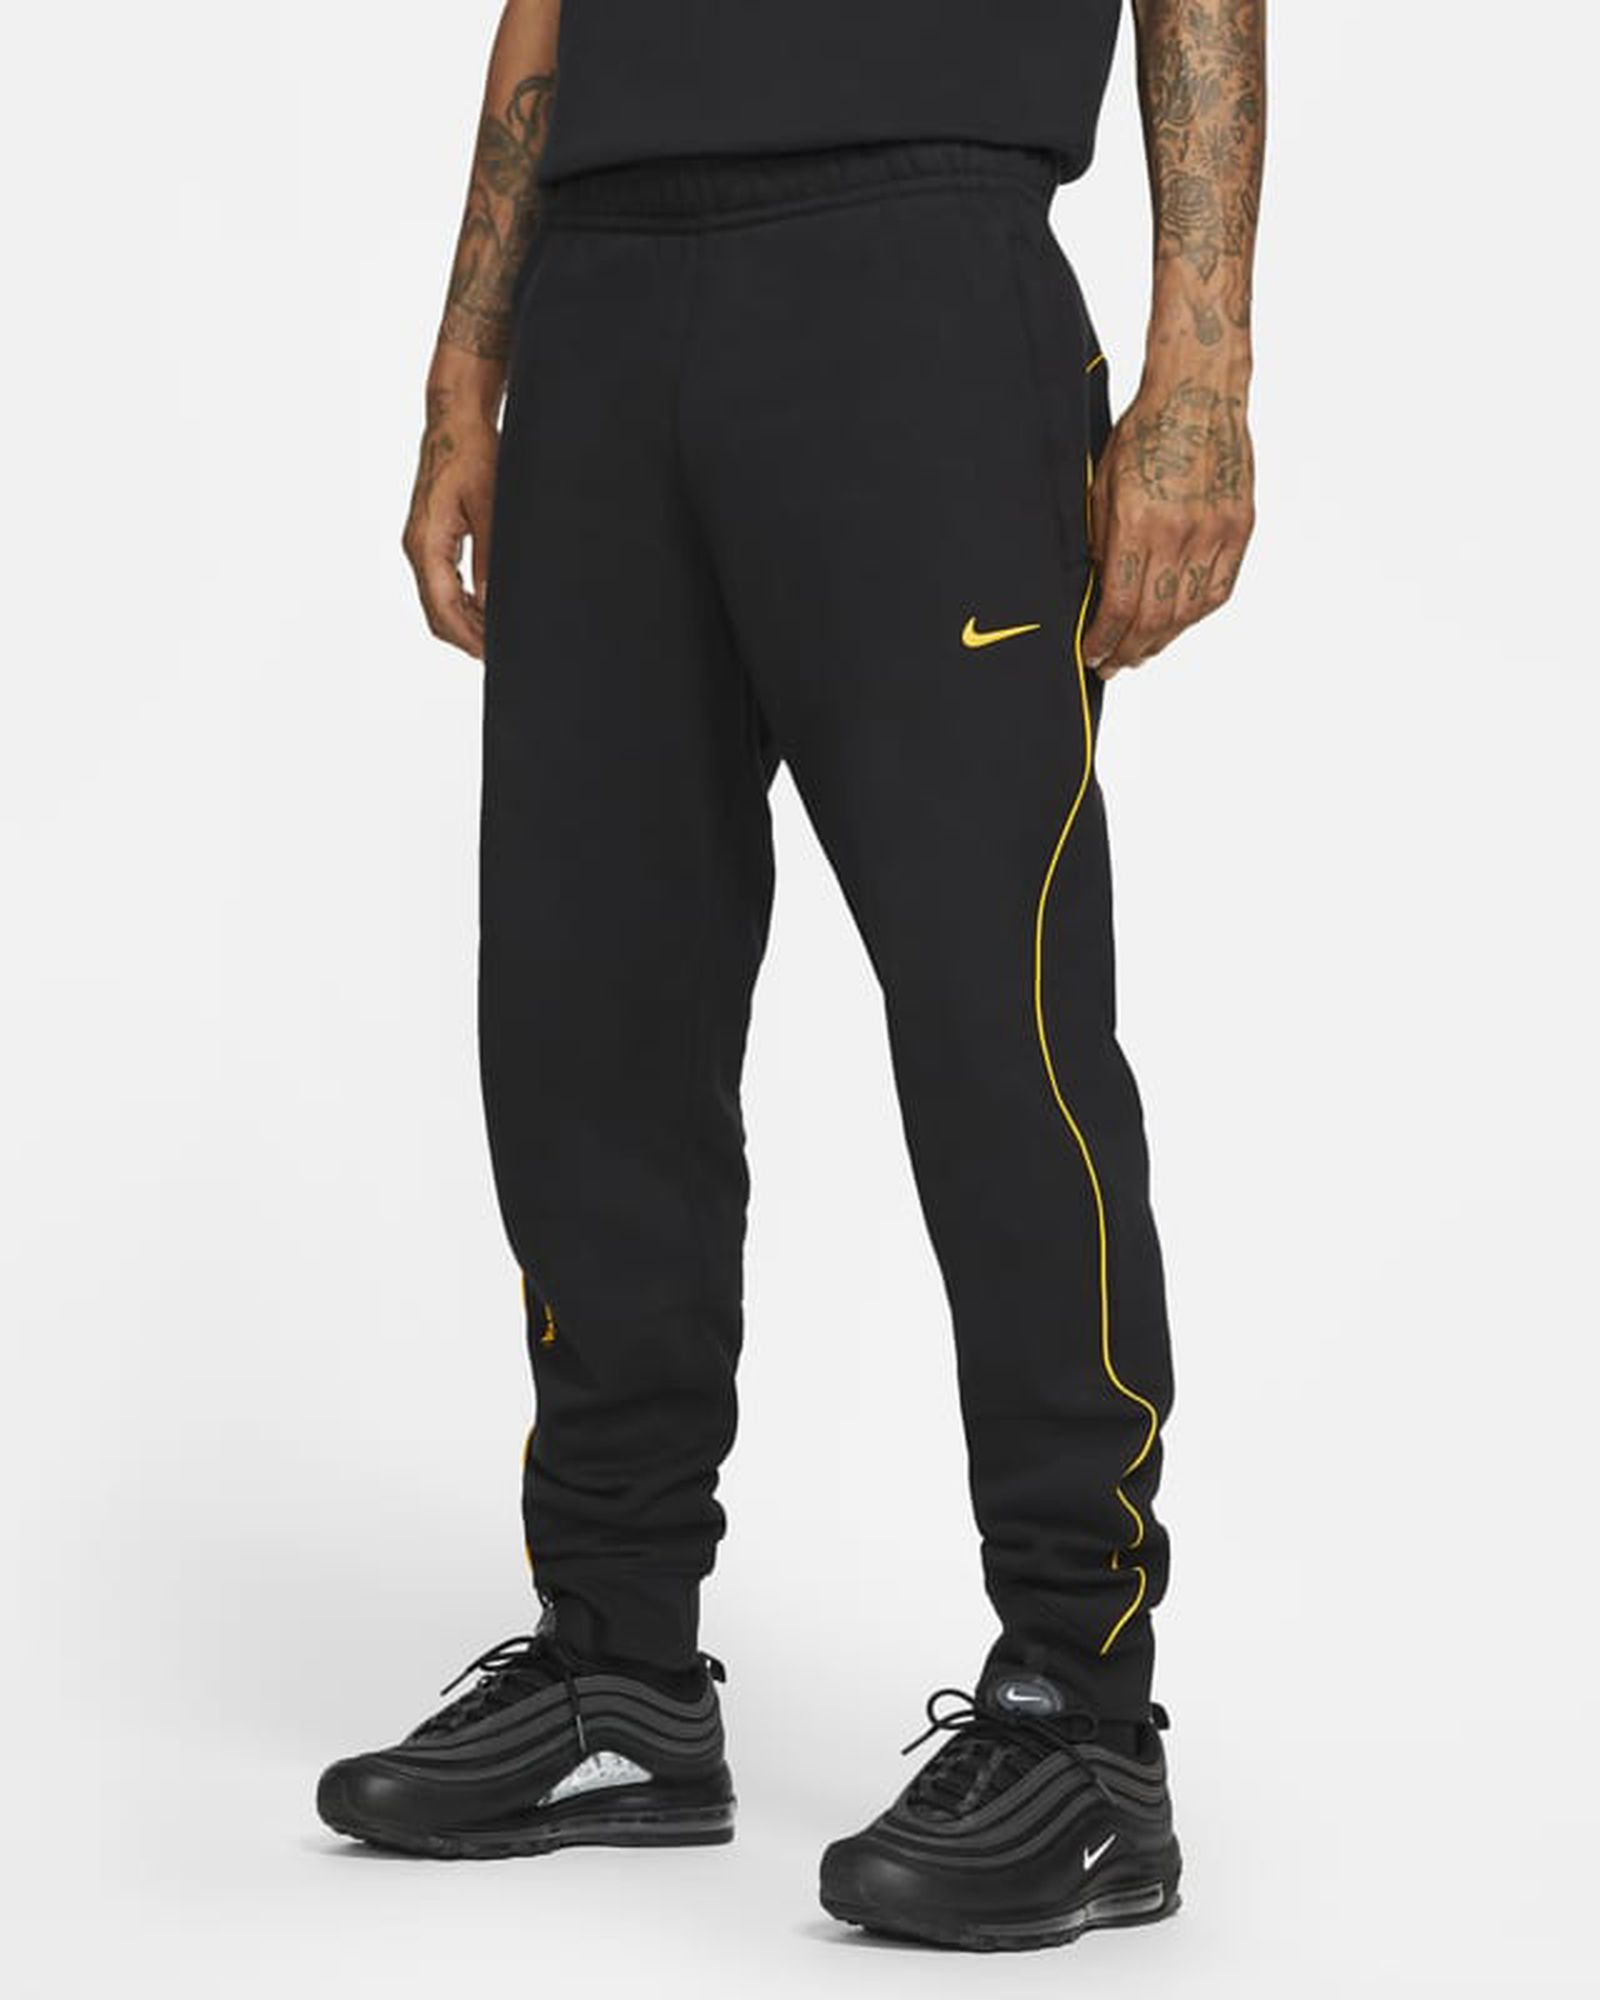 drake-nike-nocta-collection-release-date-price-09